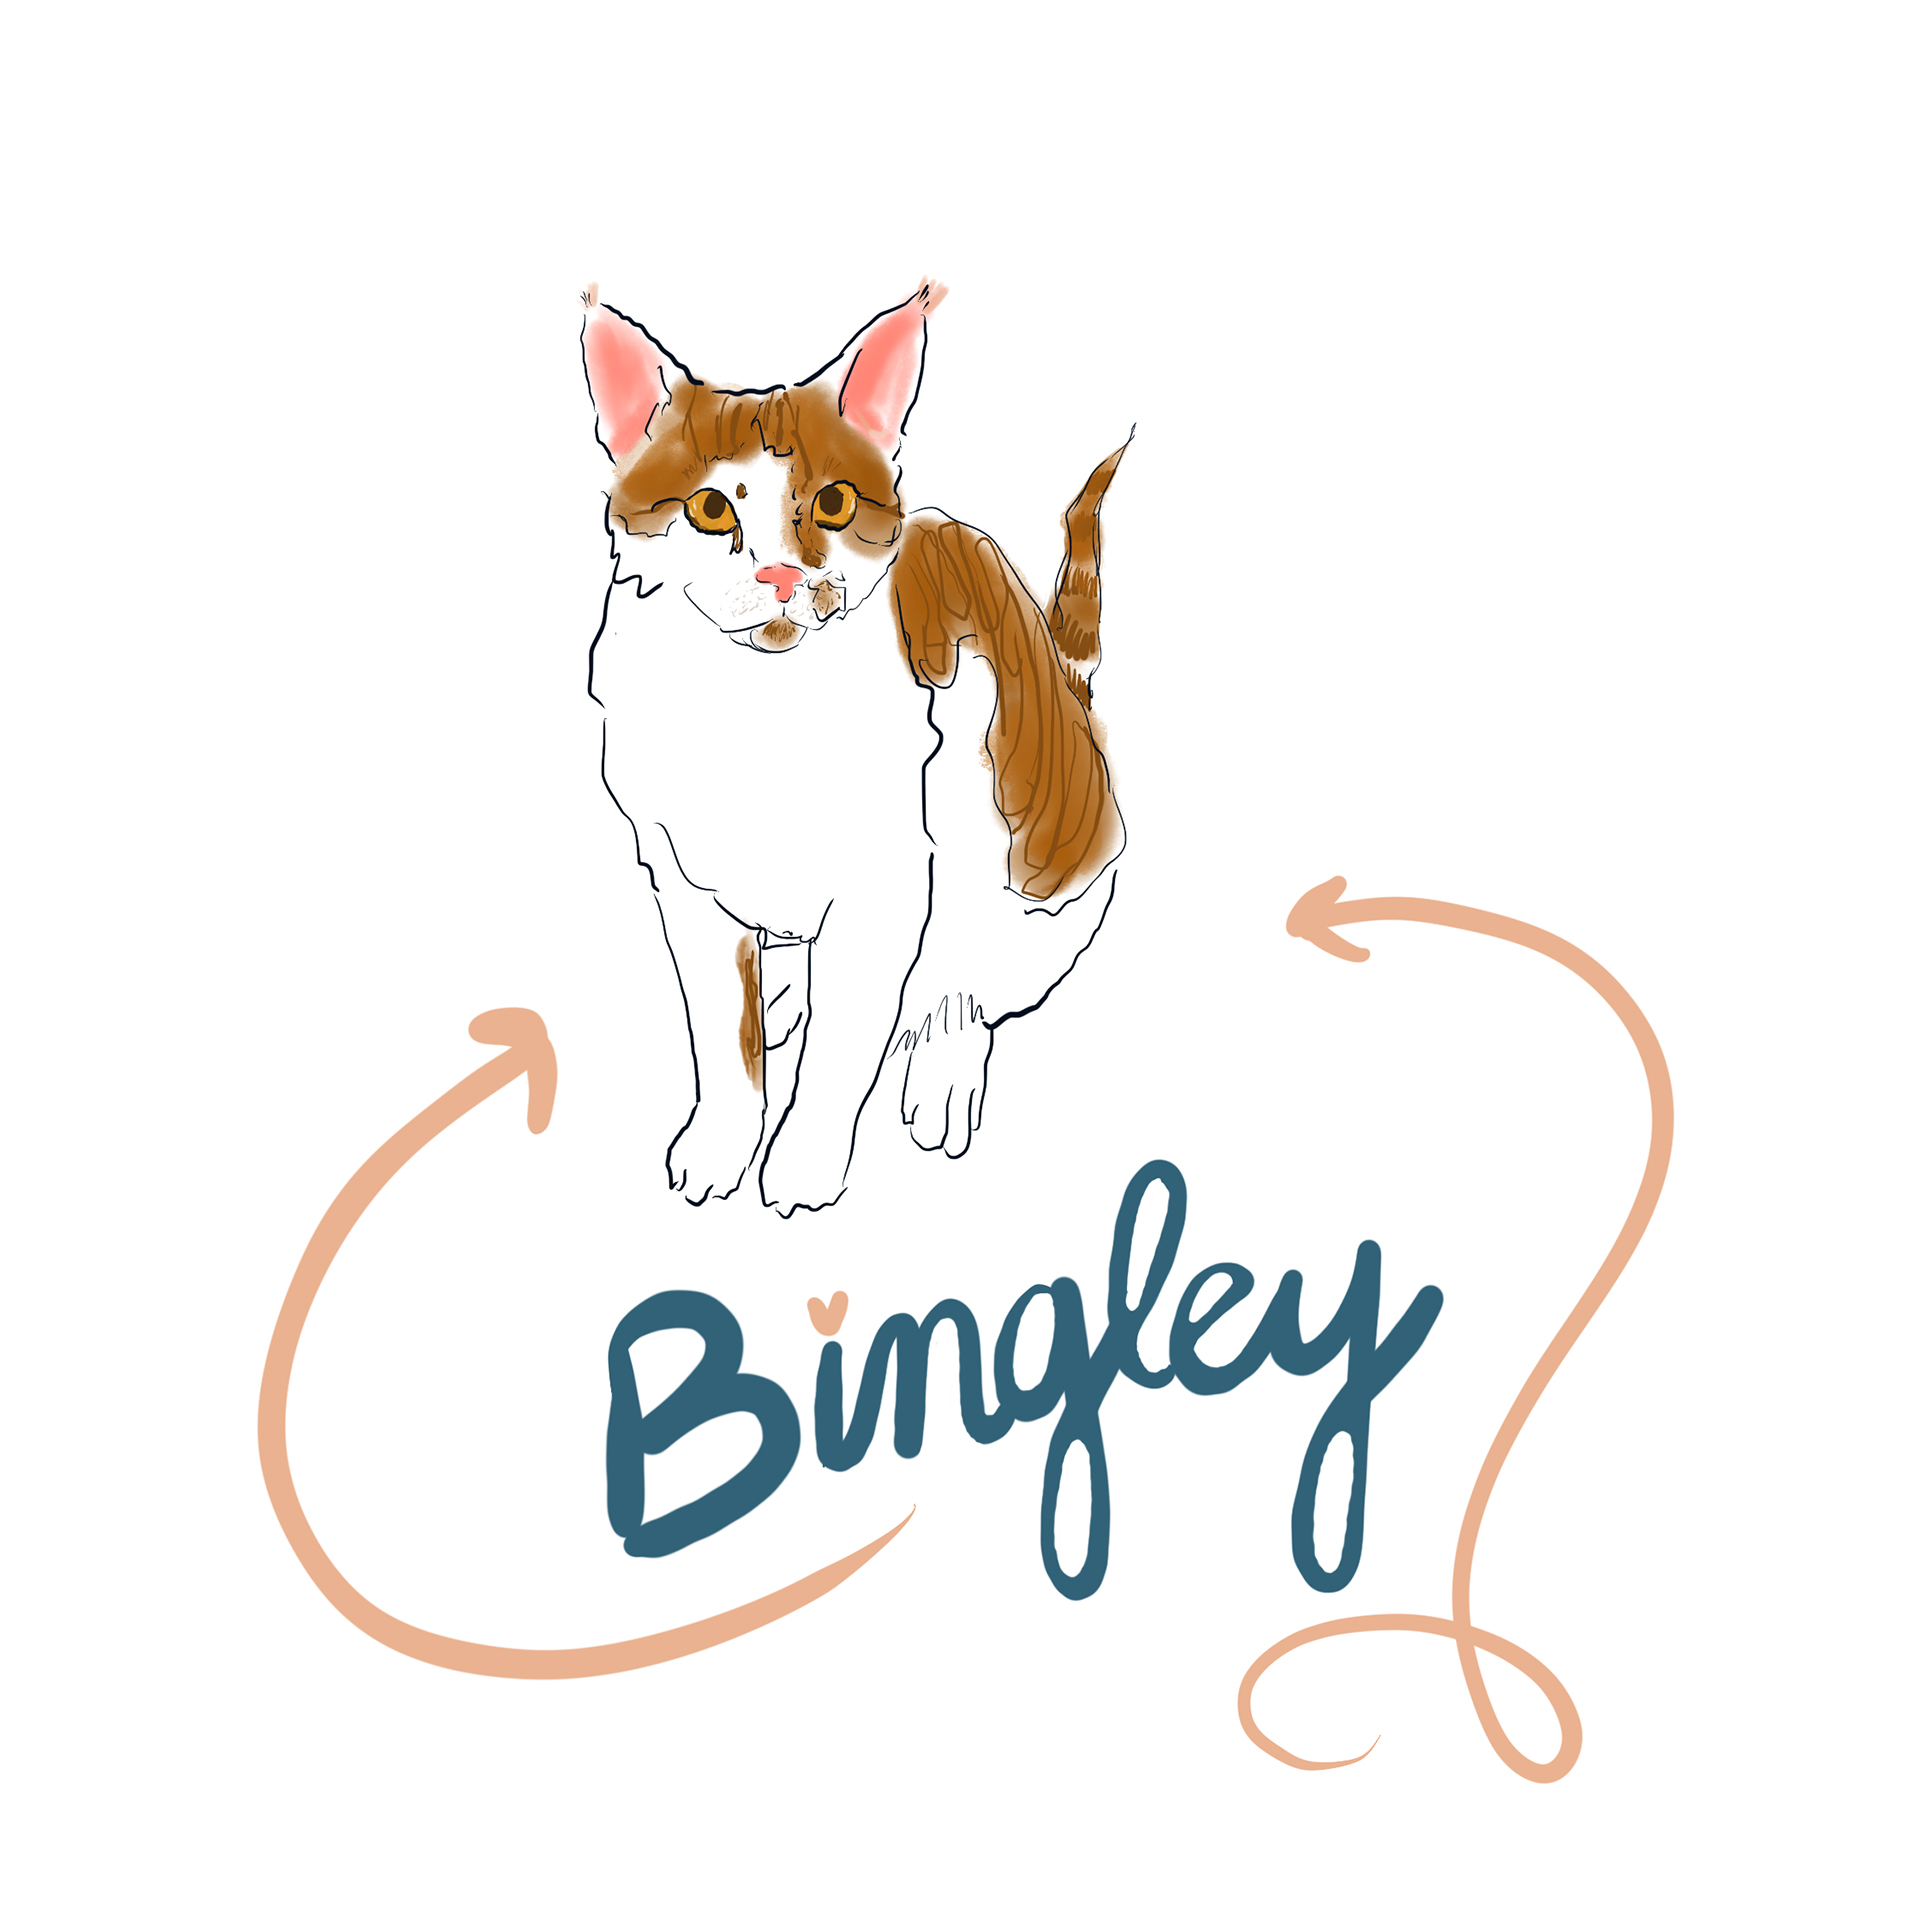 Bingley is 9 months old.